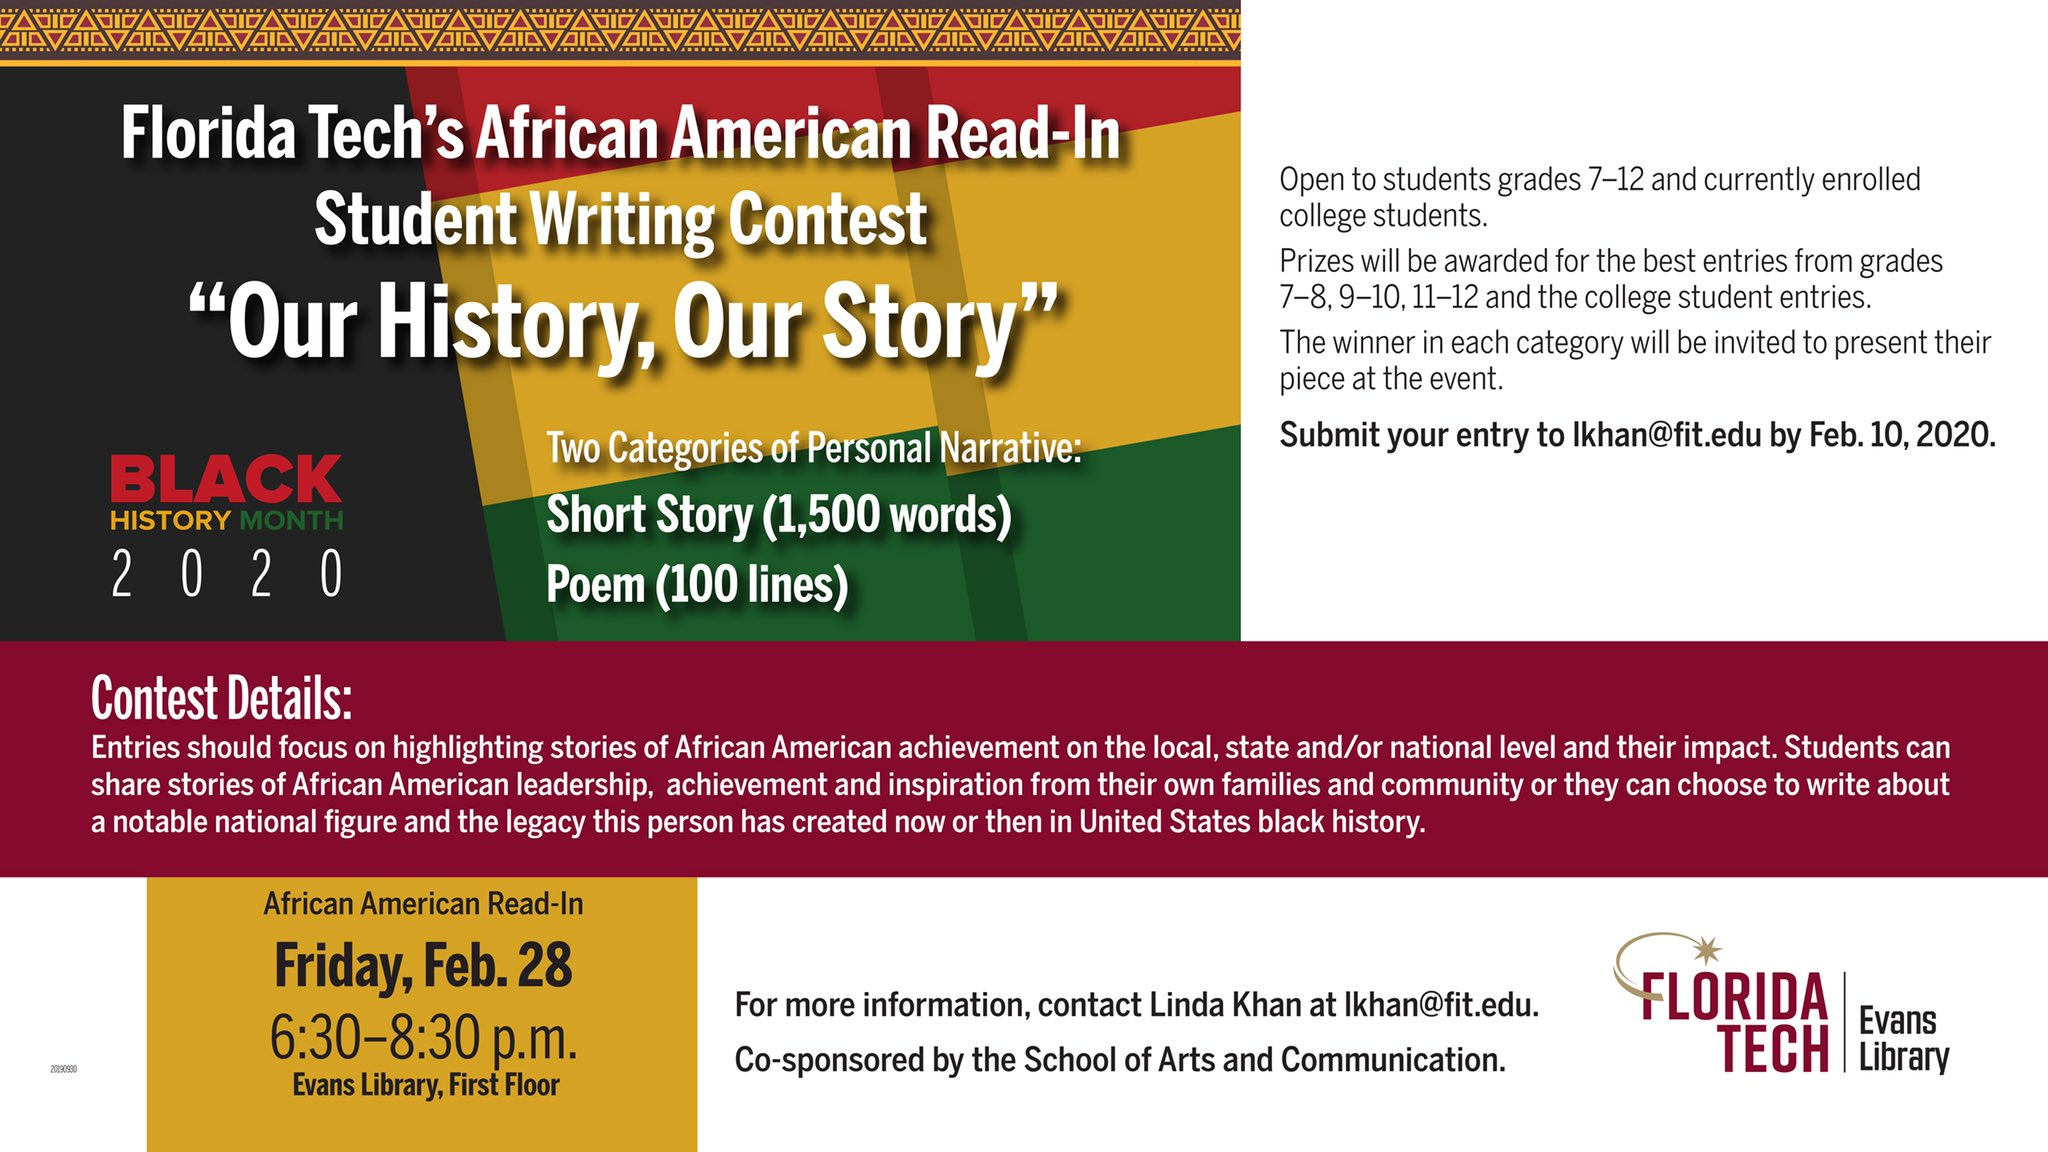 Evans Library On Twitter The Library Is Hosting A Writing Contest For Florida Tech S African American Read In Event To Celebrate Black History Month Entries Are Due By February 10 2020 Fitevanslibrary Floridatech